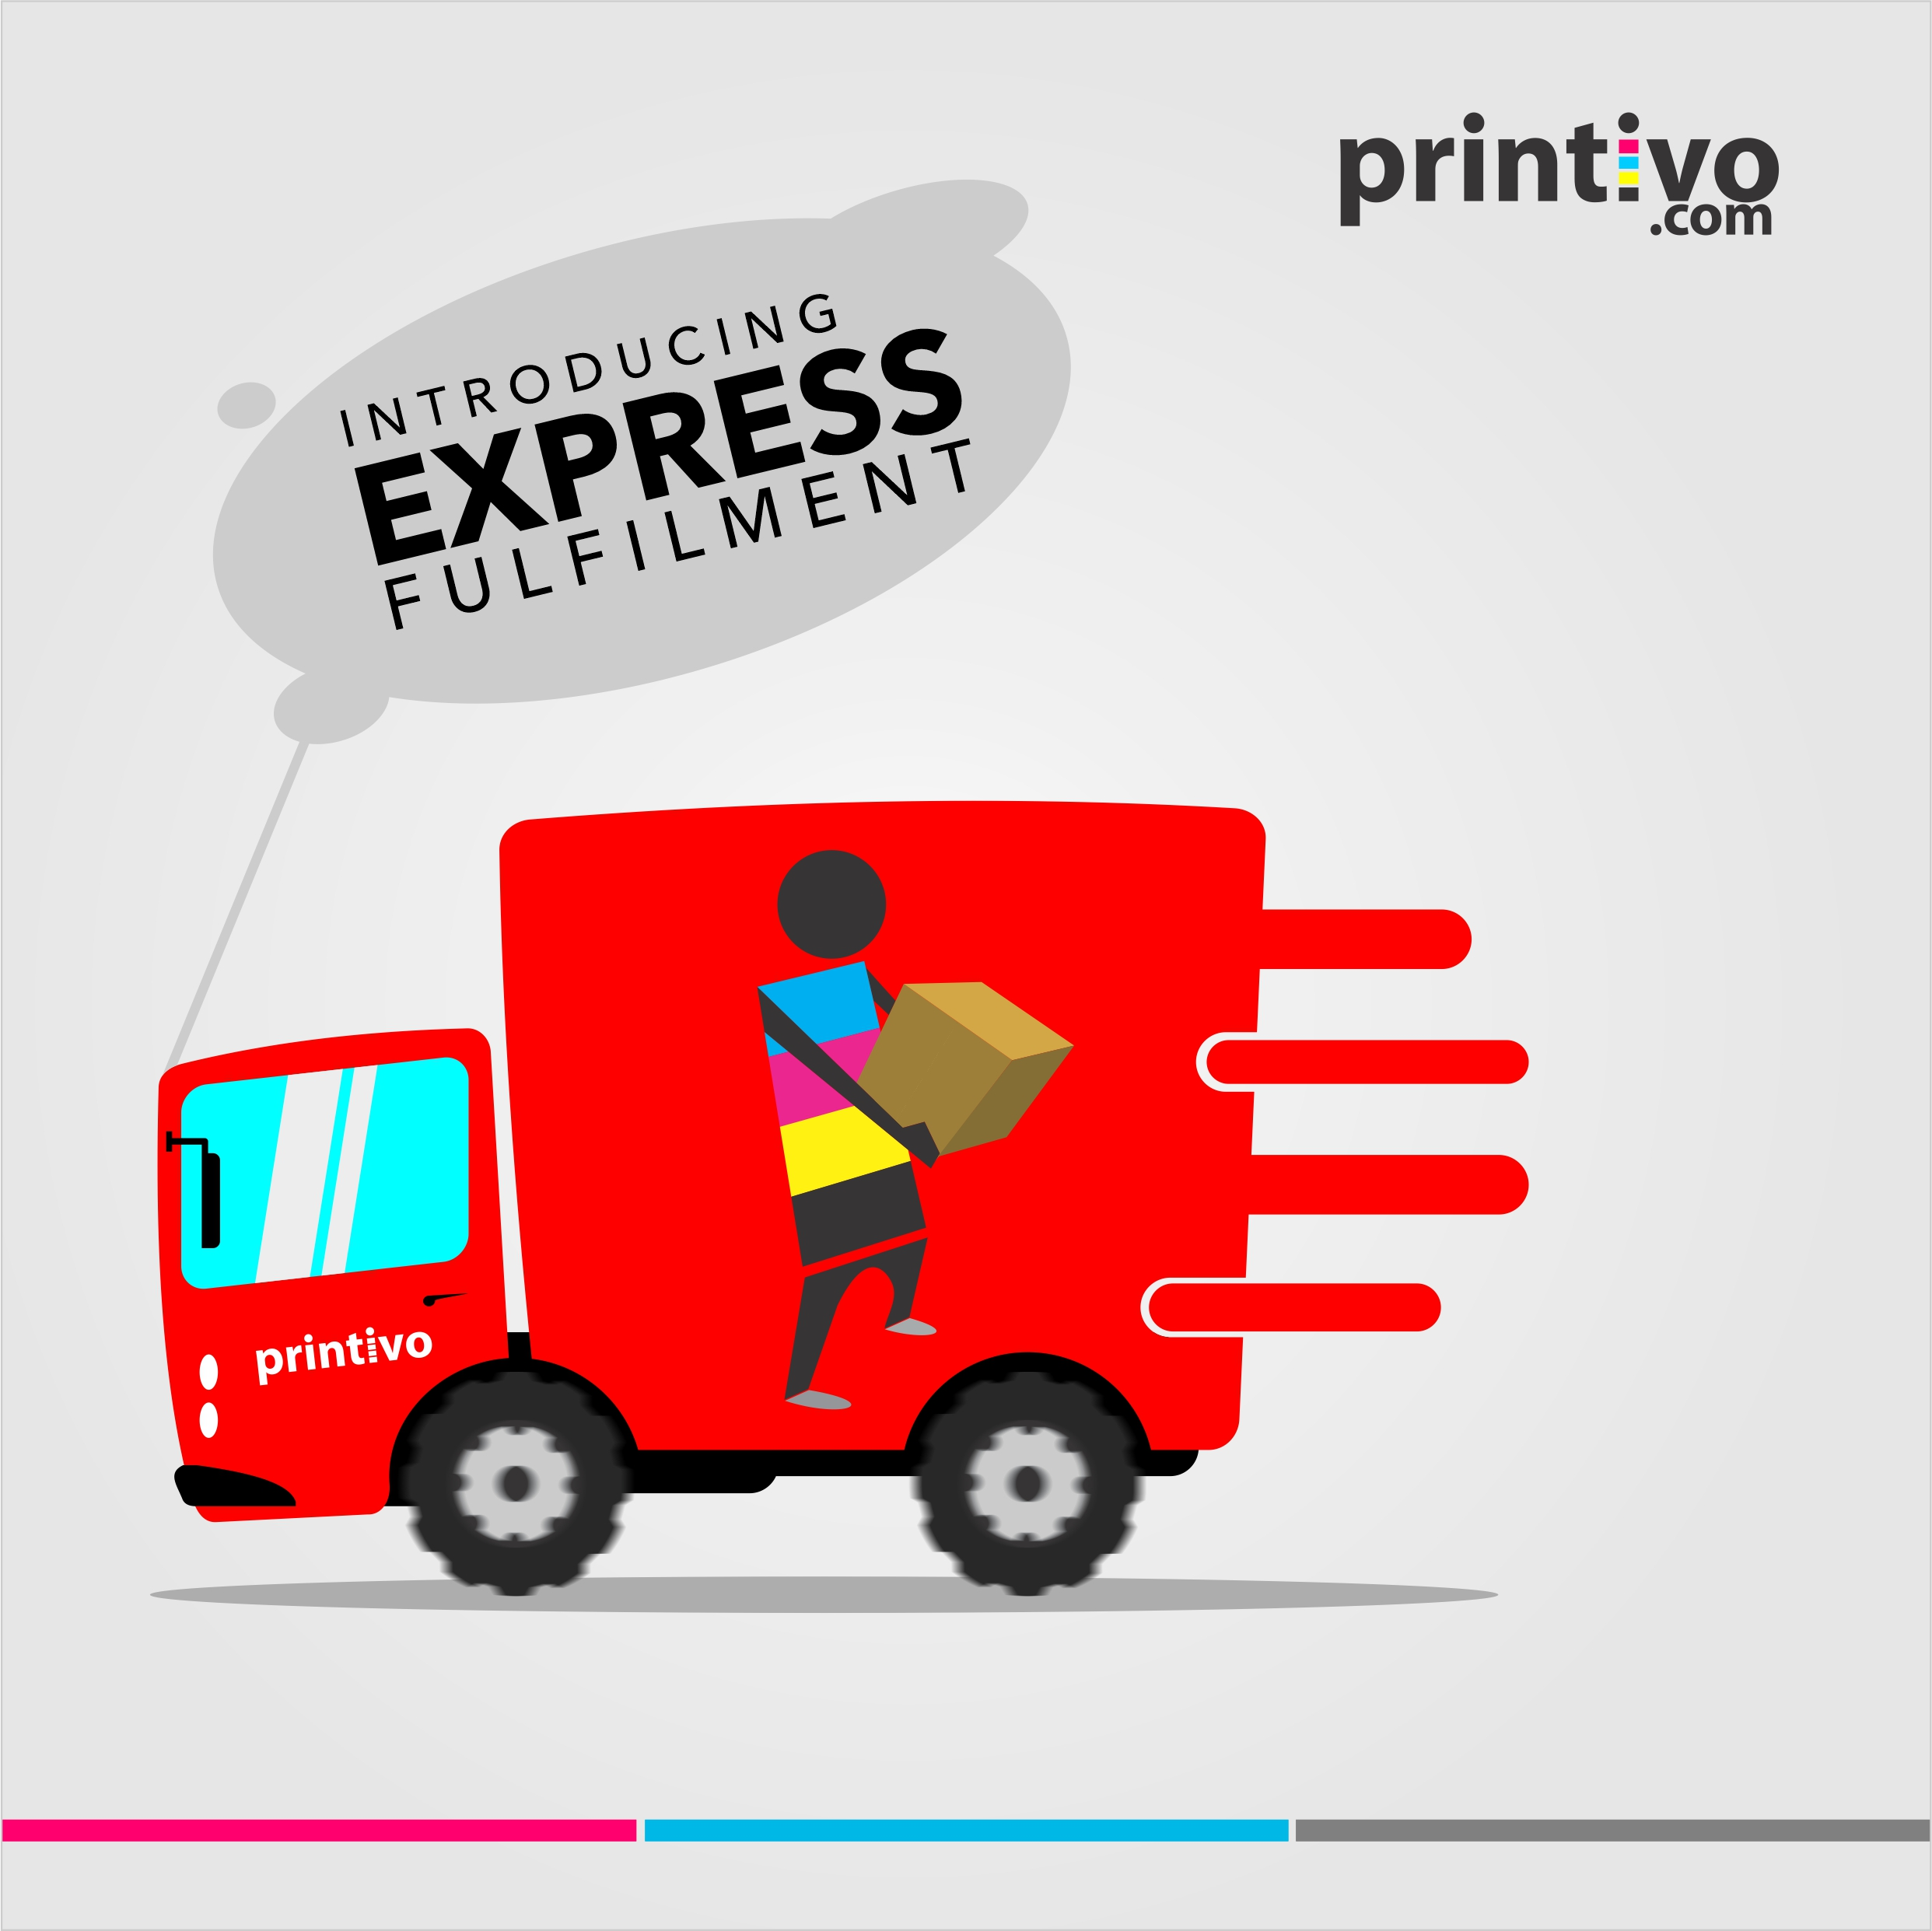 Introducing Printivo Express Fulfillment and Gifts Services